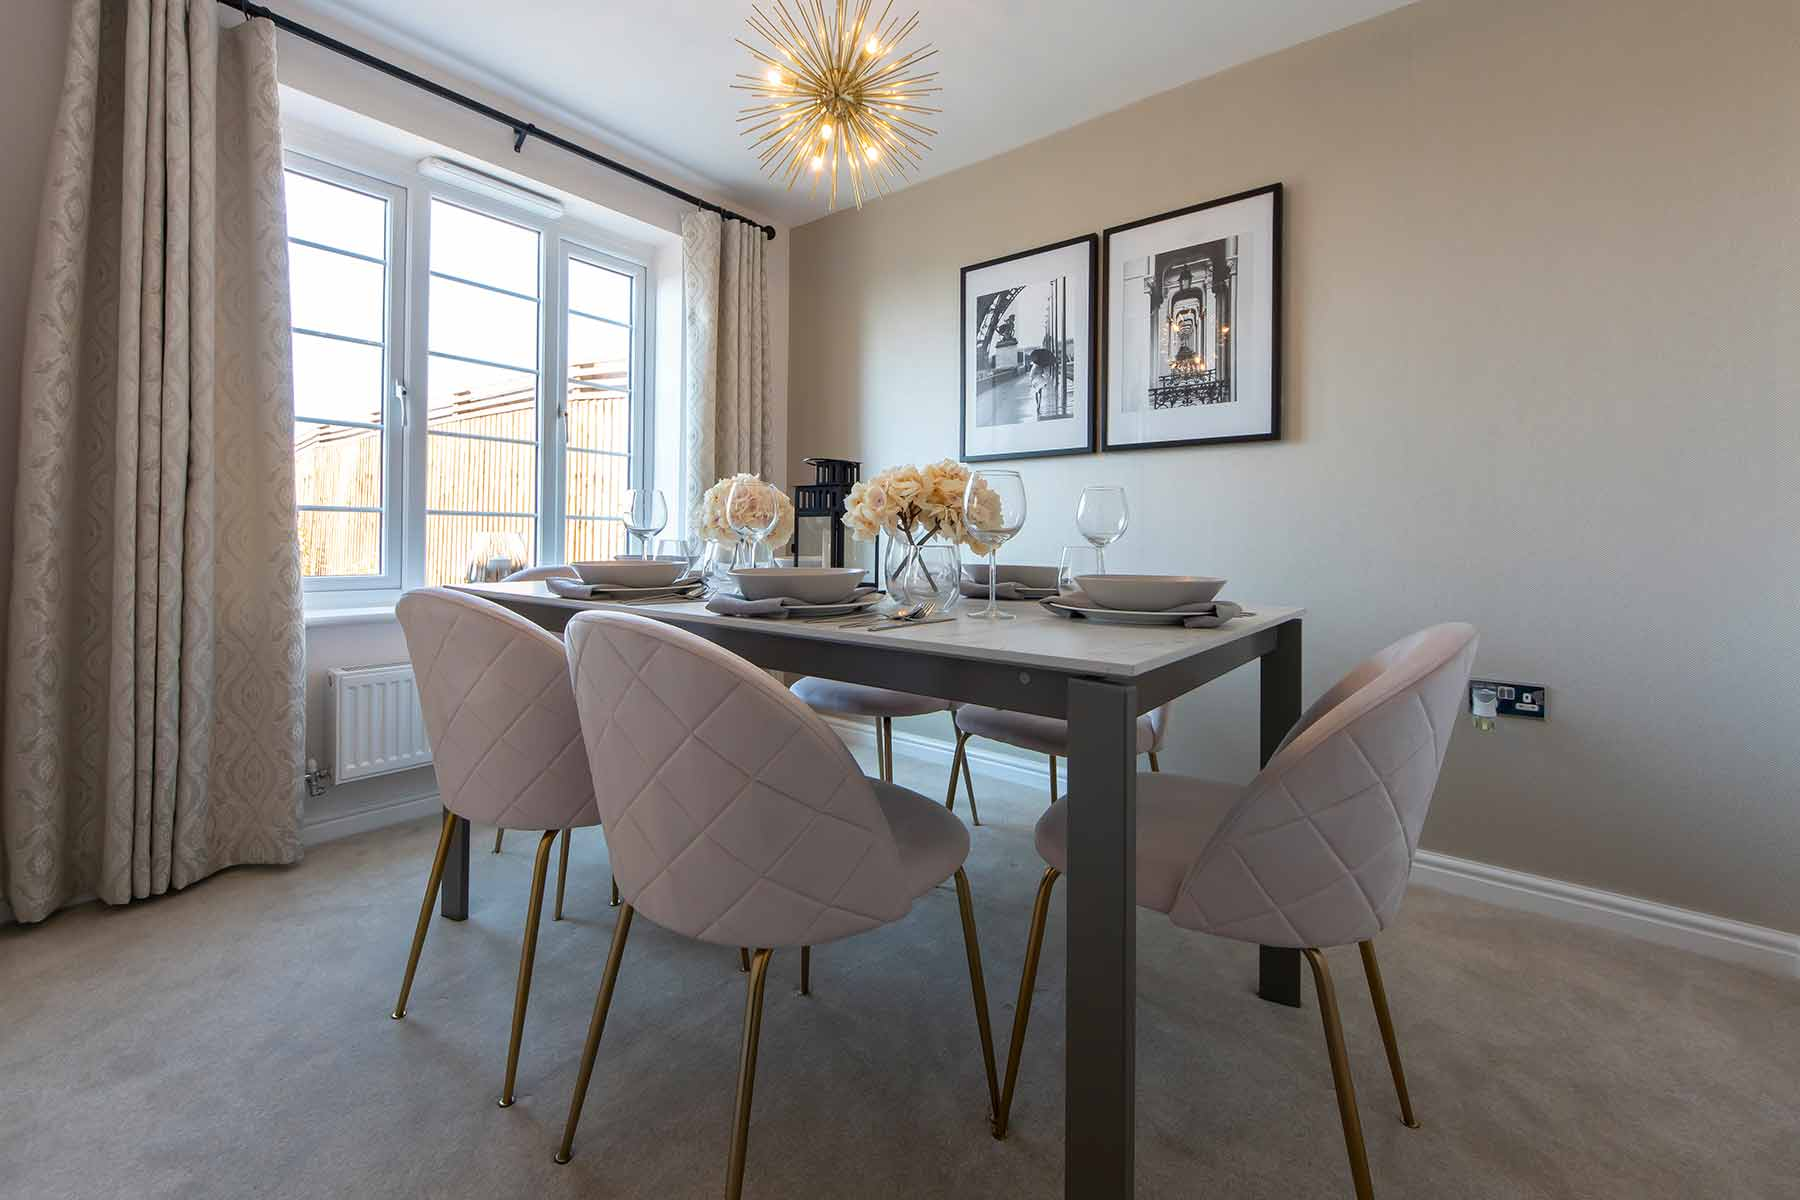 Dining room Aldenham-3bedroom-showhome_04